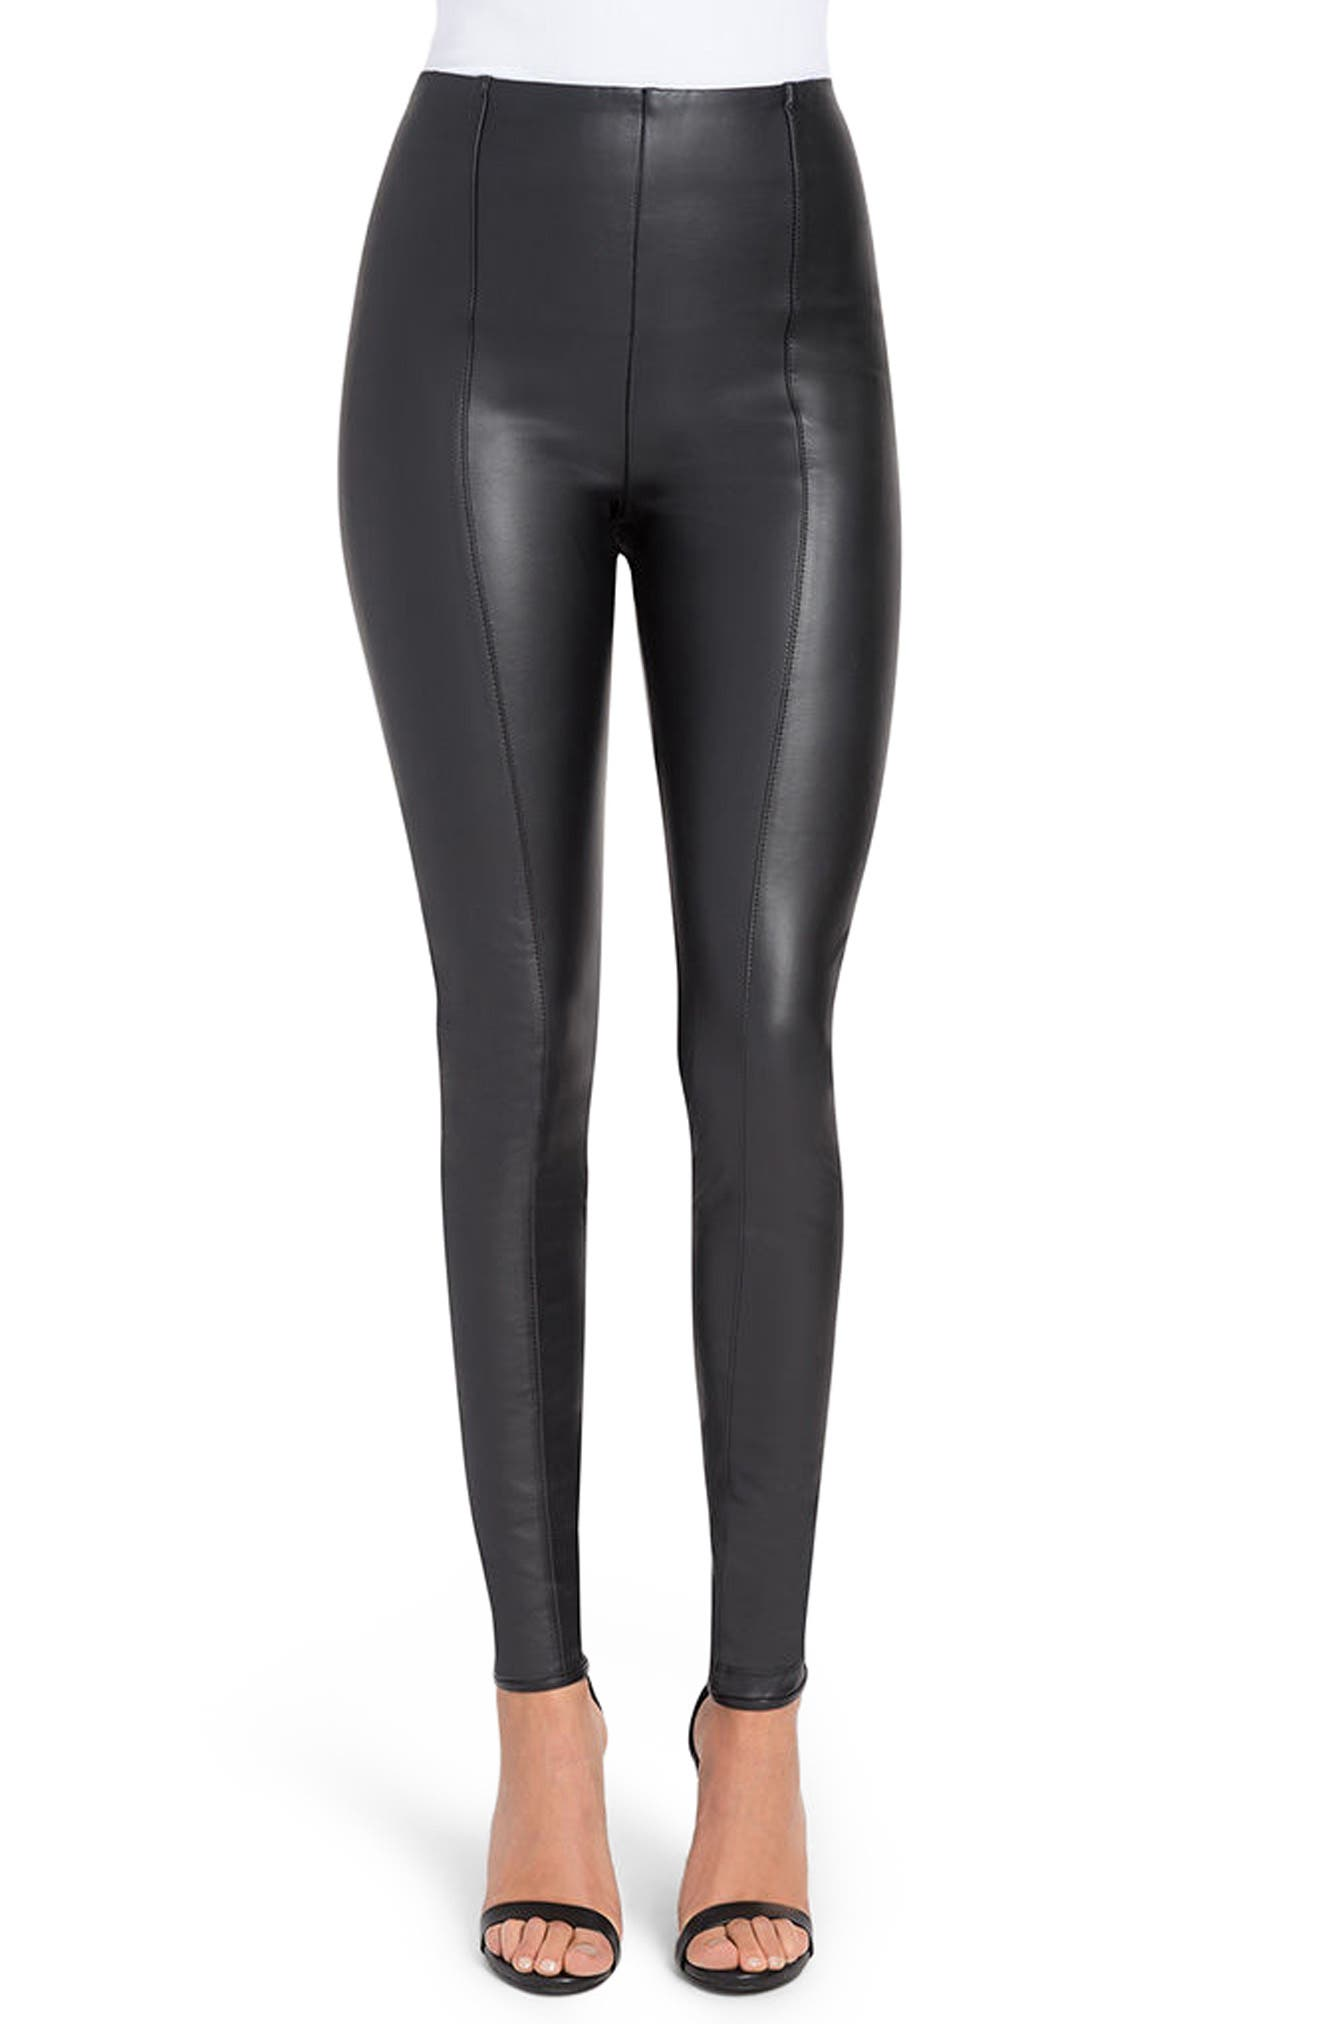 Alternate Image 1 Selected - Lyssé High Waist Faux Leather Leggings